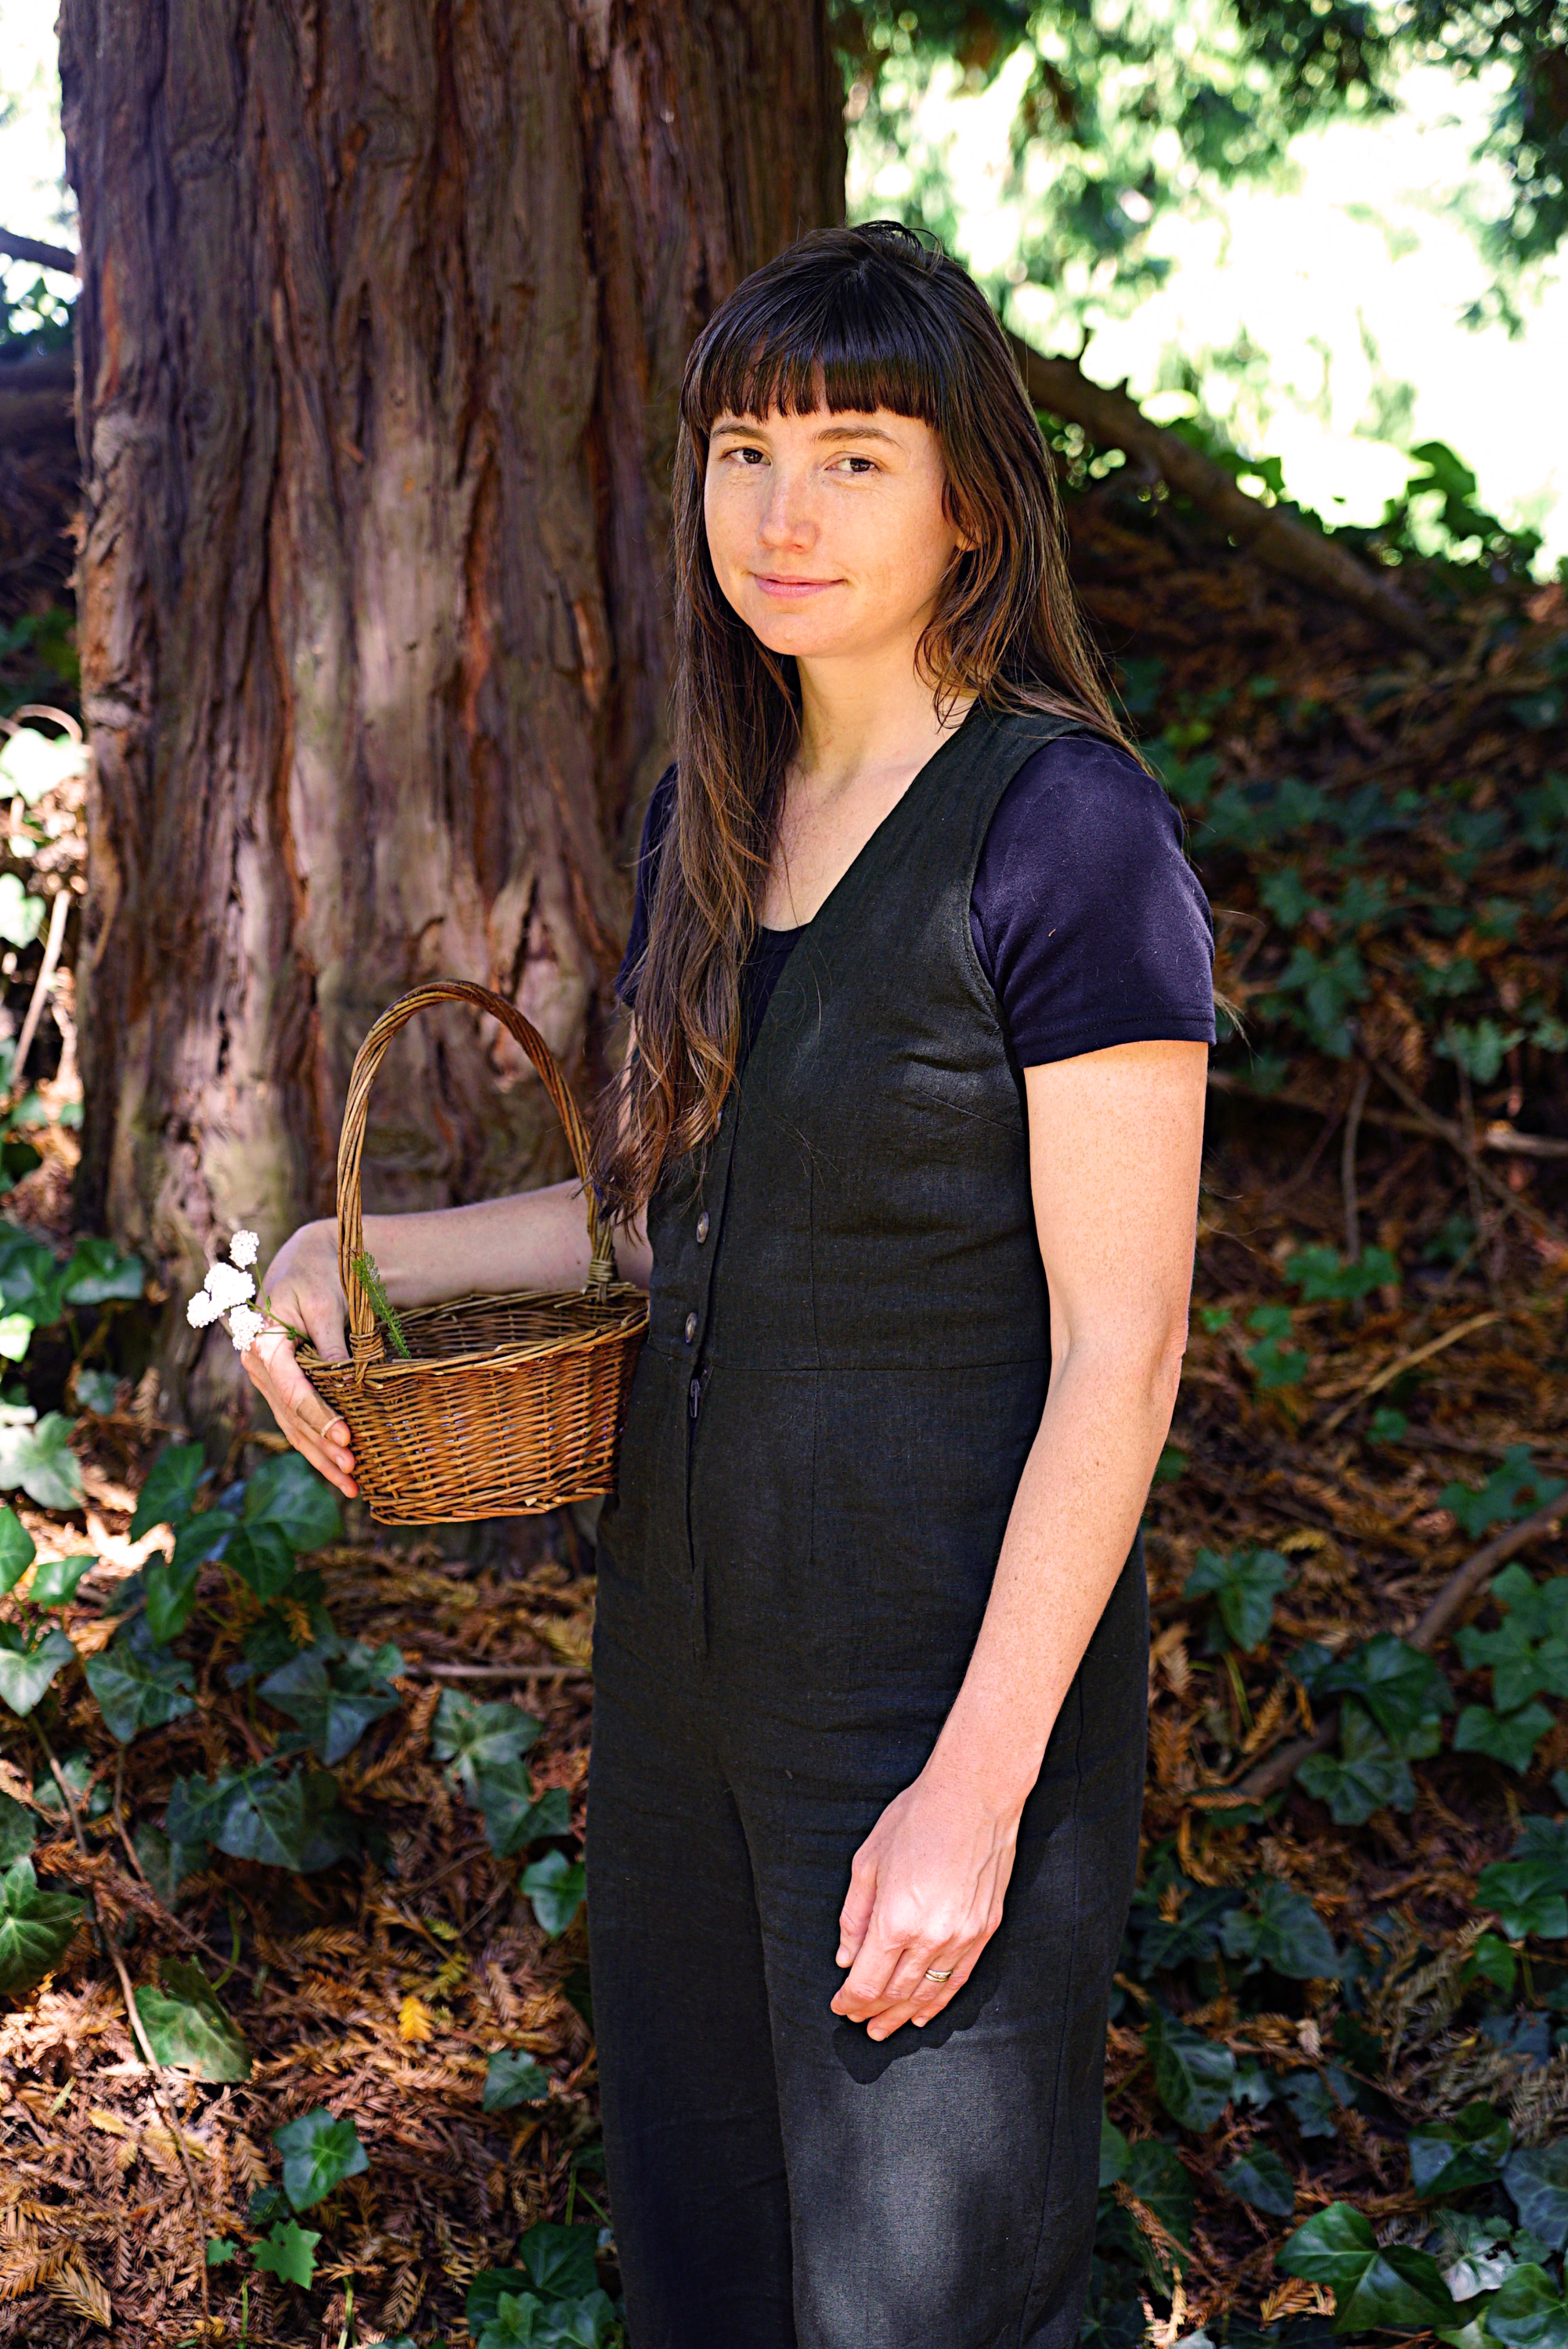 Lindsey - Damselfly - Instructor - Linsey Moore comes to us from Wilderness Awareness School and Tiny Trees Outdoor Preschool working with young children and teaching methods founded in respect and child-led, inquiry-based curriculum. She has also found great teaching inspiration from The Cedarsong Way as well as the 8 Shields model of nature connection.She's inspired by the deep presence and immersive attention that children and adults find in nature together. She's excited about all the play, laughter, stories and love that is shared as we deepen our sense of belonging together.